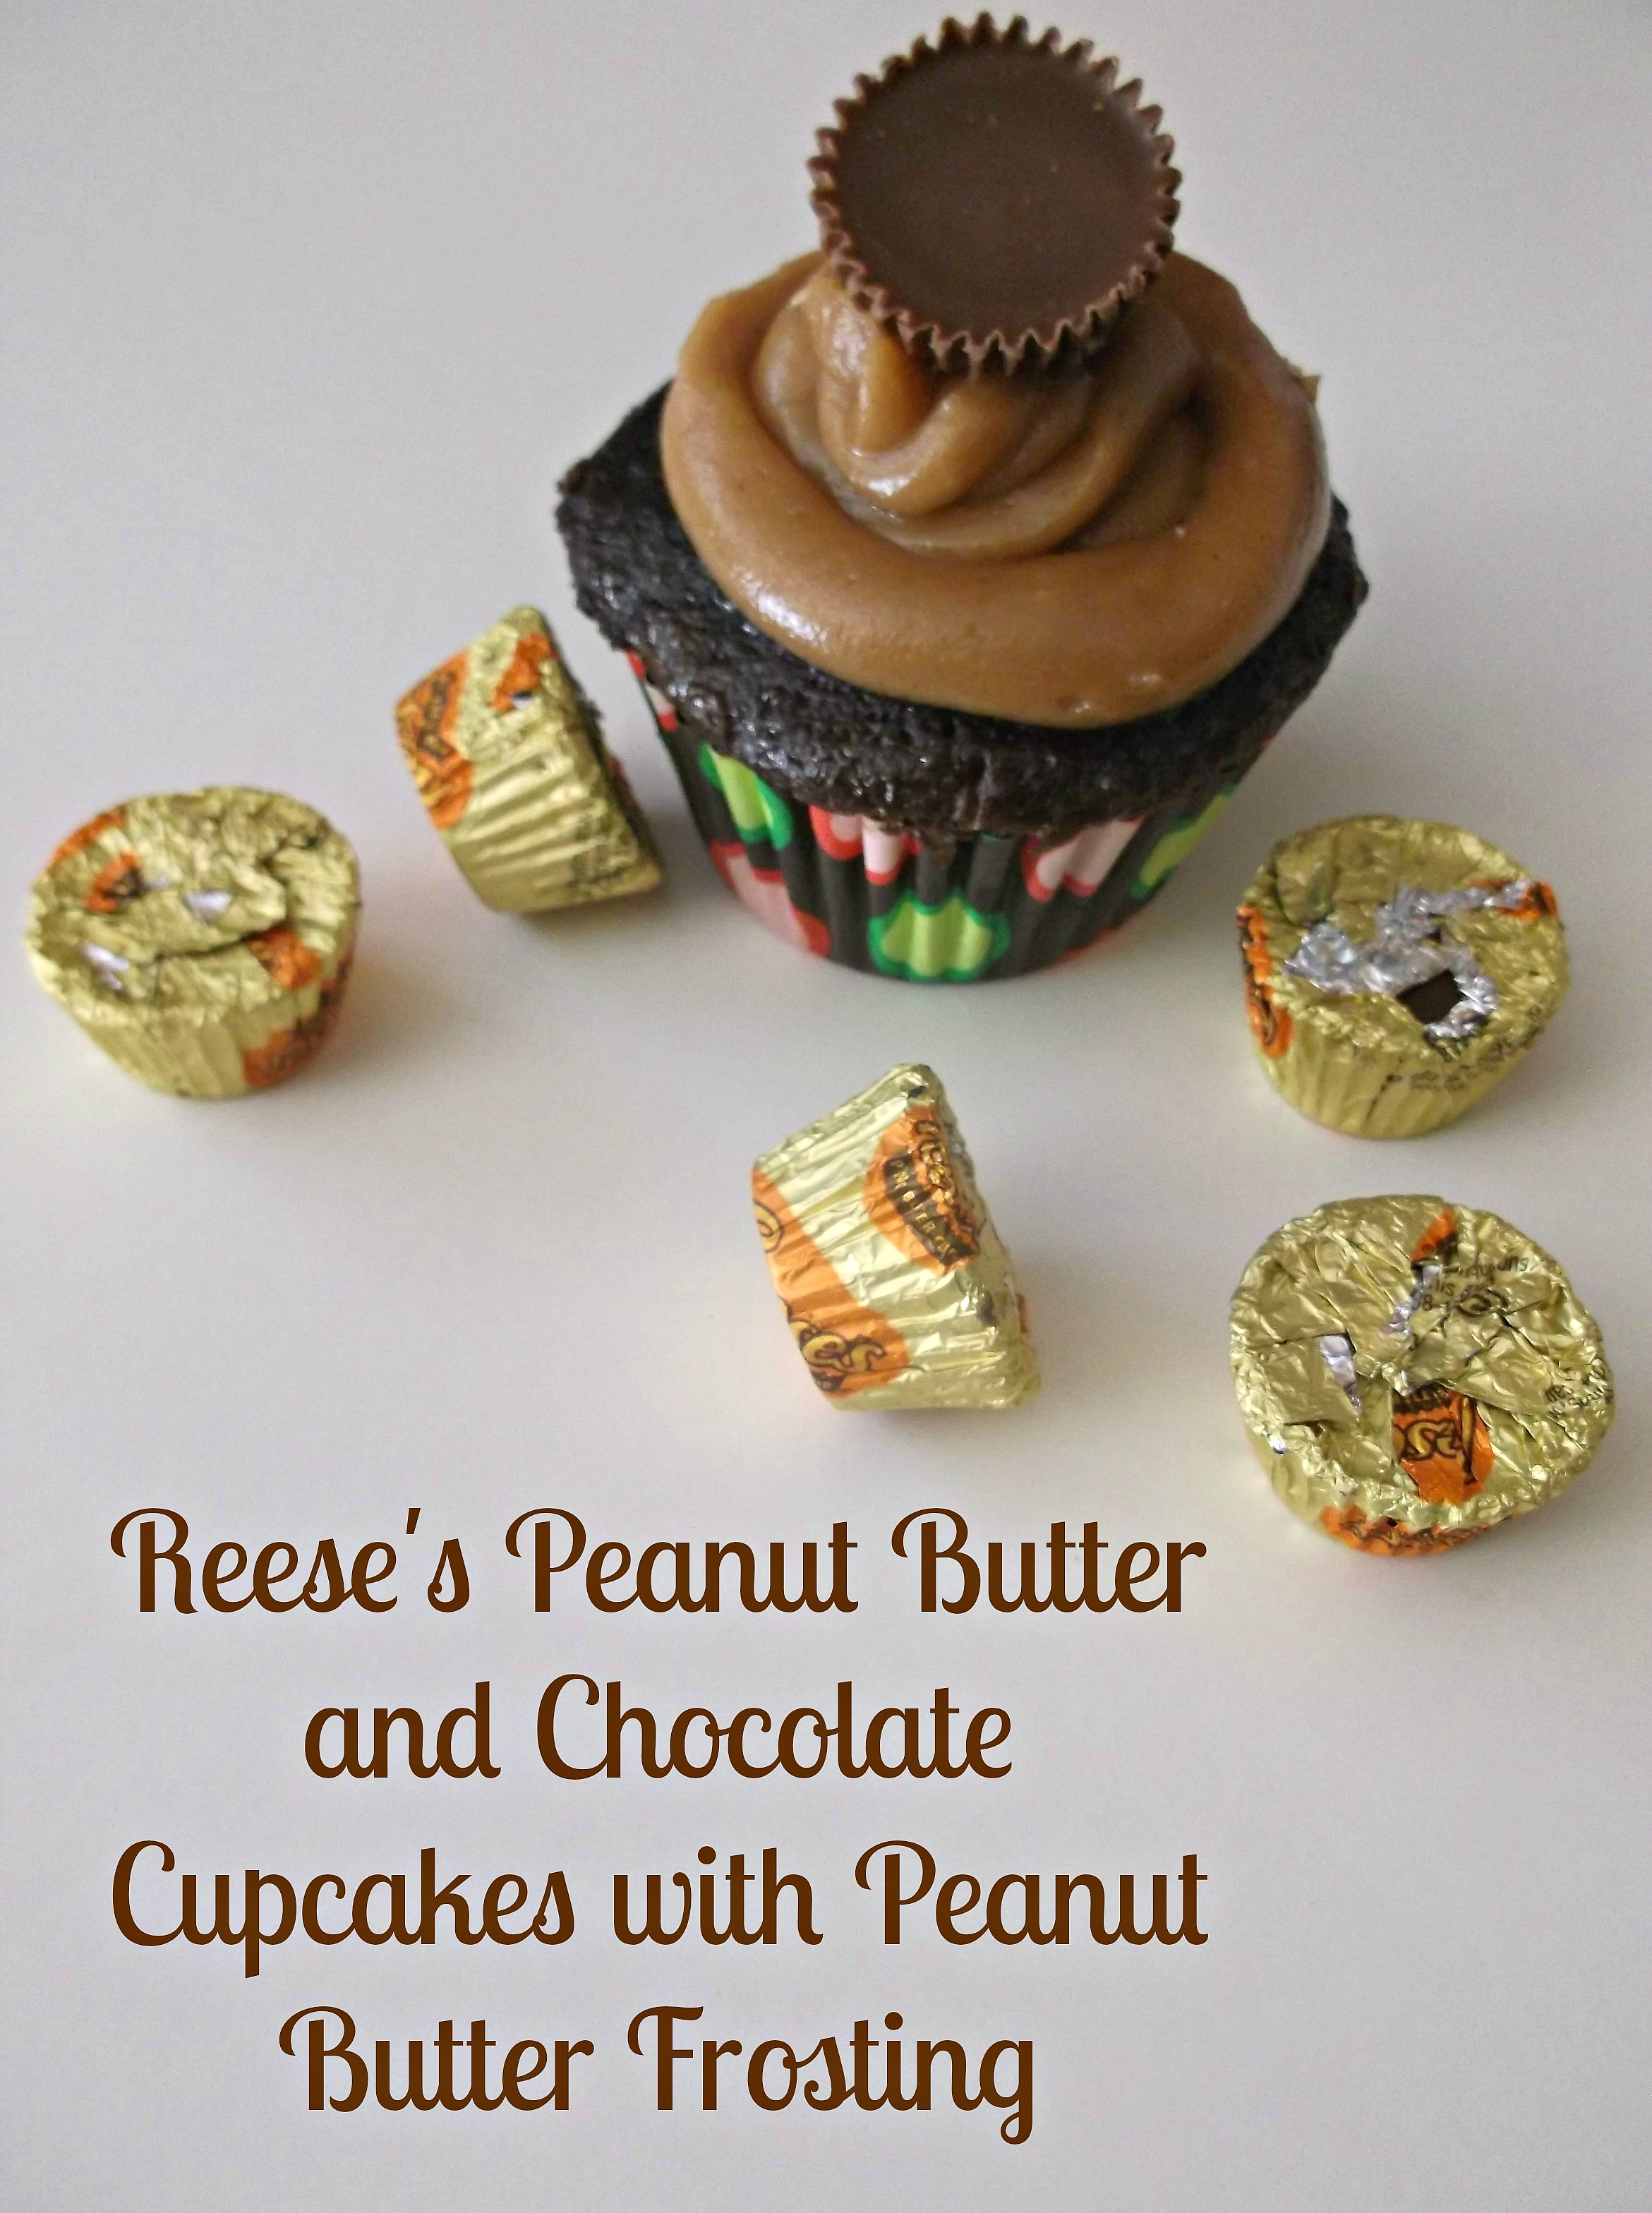 ... Peanut Butter and Chocolate Cupcakes with Peanut Butter Frosting